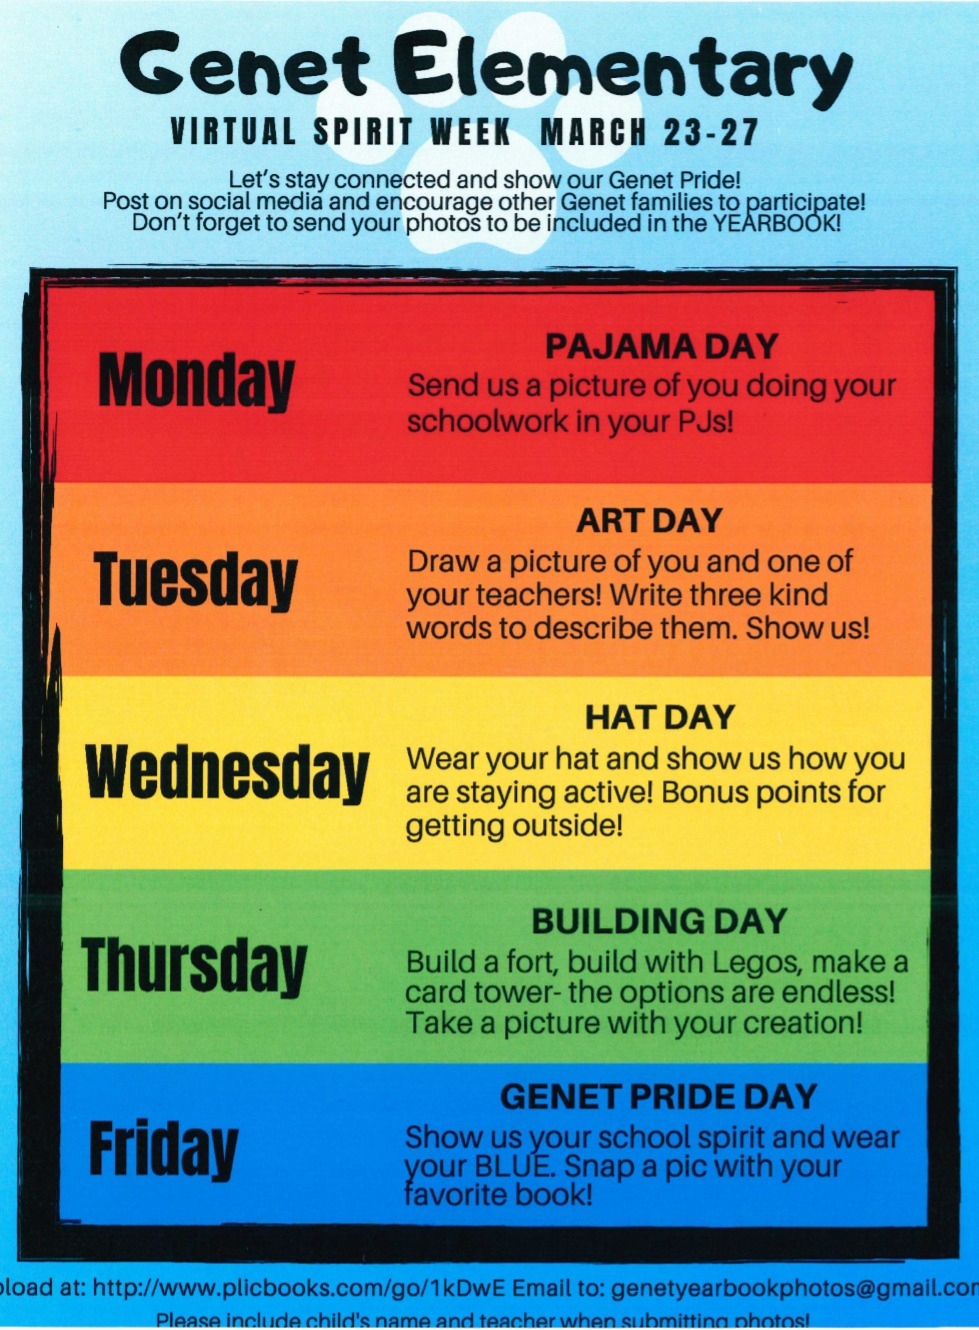 Genet Virtual Spirt Week schedule